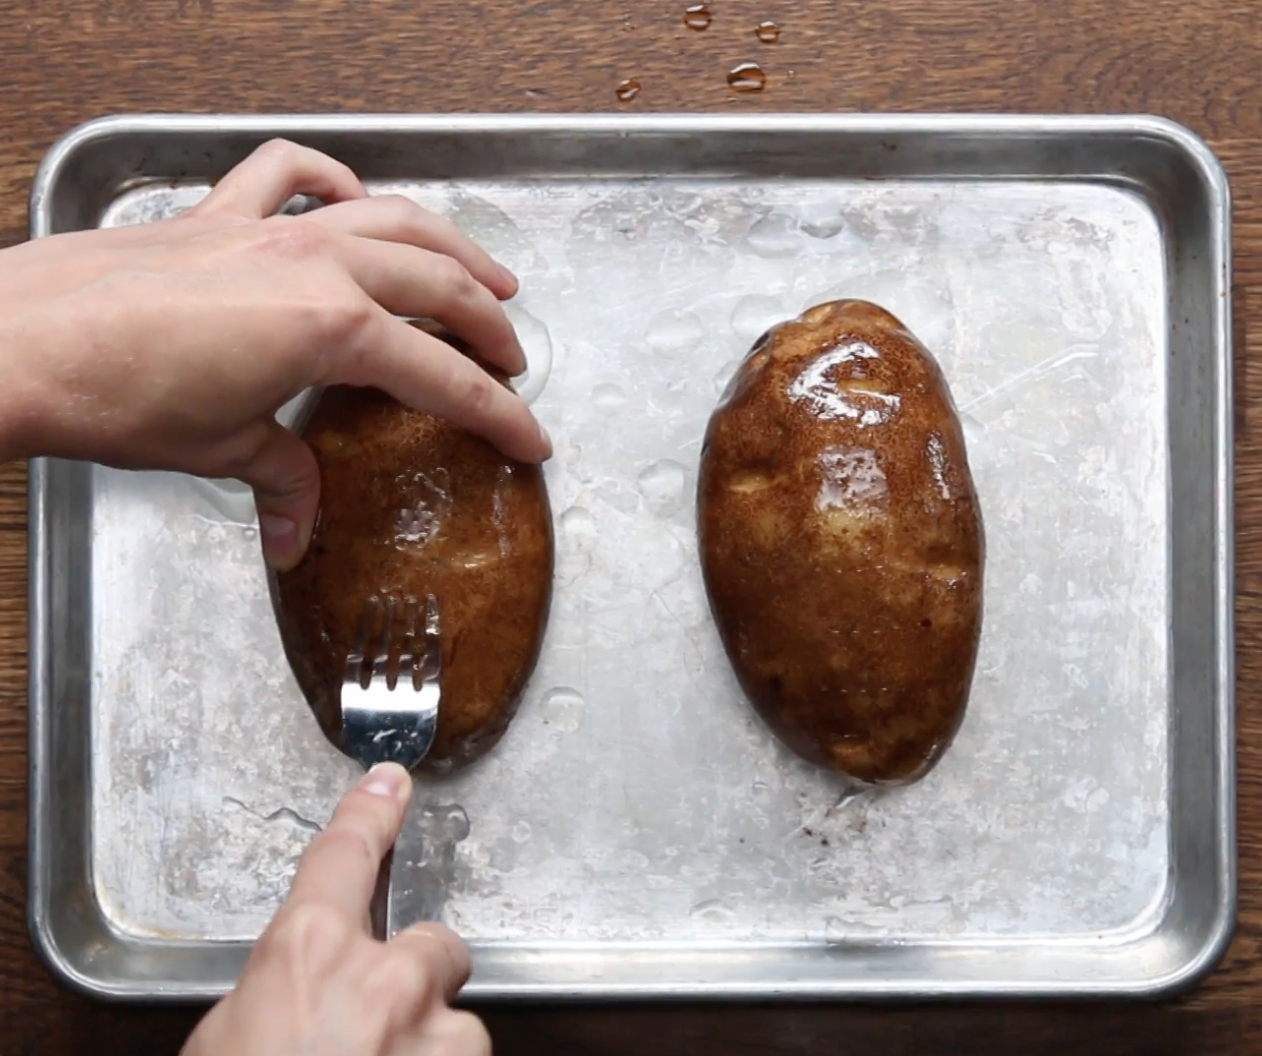 Baked Potato Microwave First Then Oven: Here's How To Perfectly Cook Potatoes